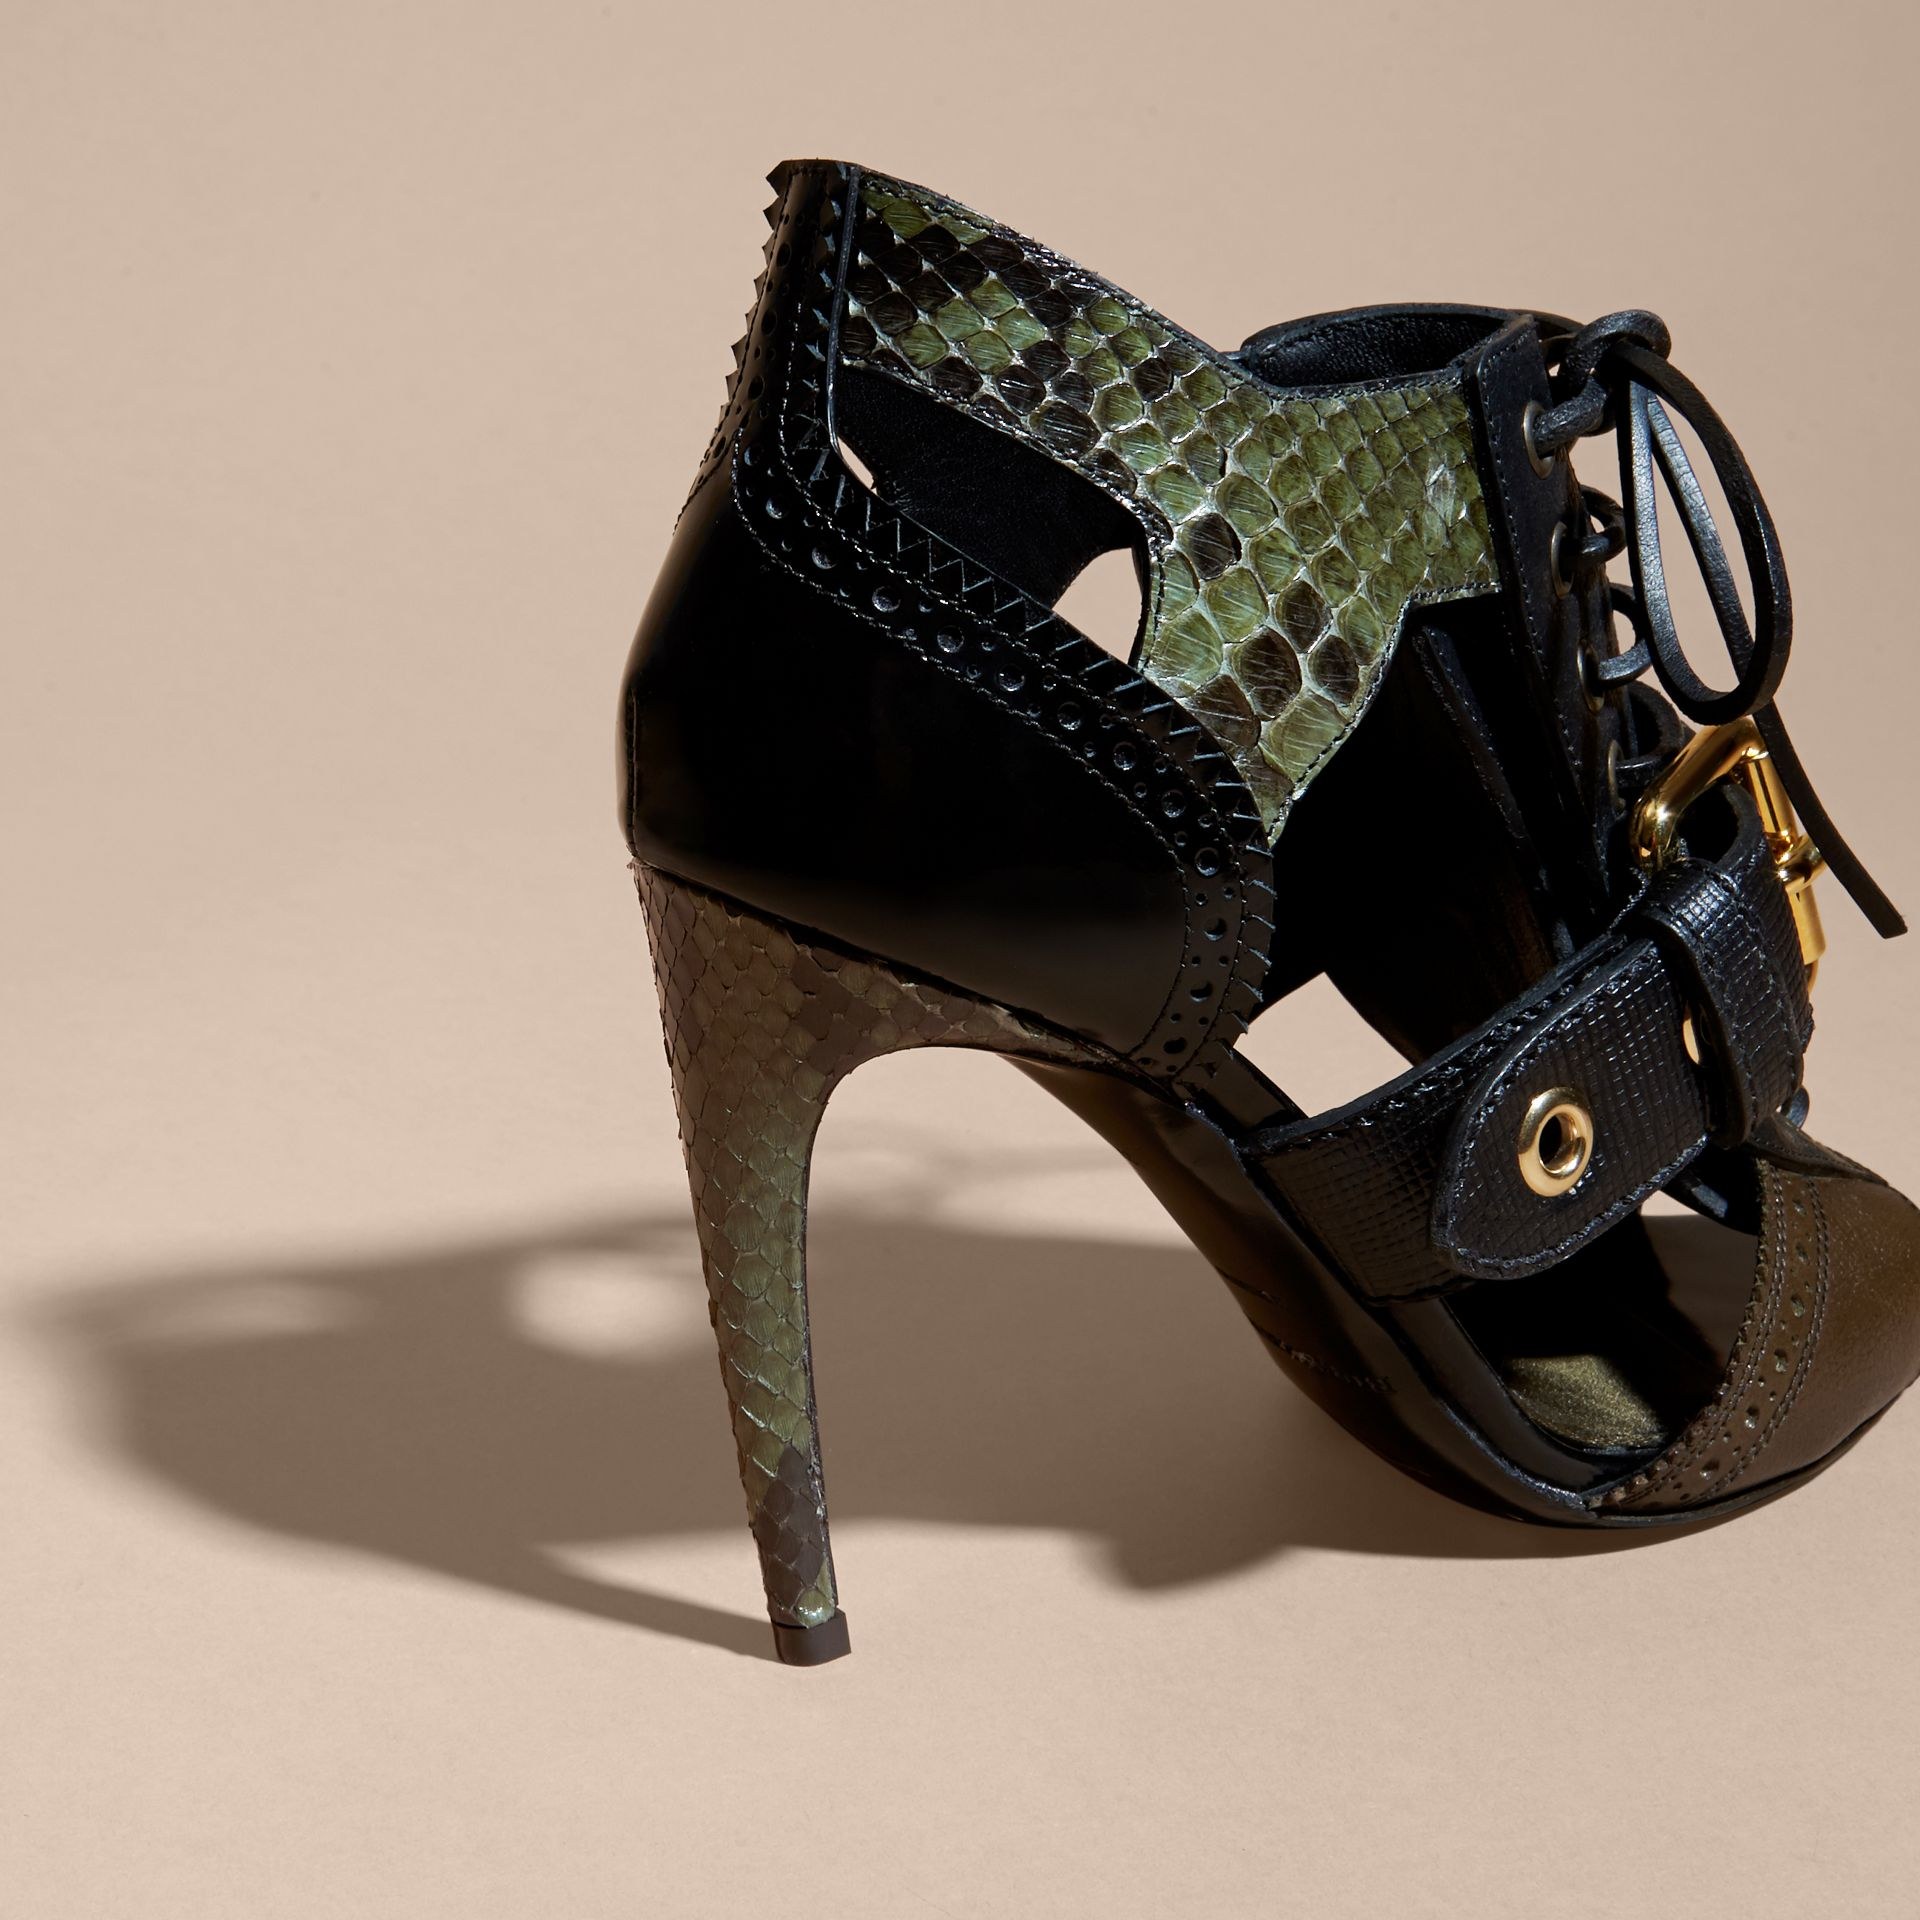 Buckle Detail Leather and Snakeskin Cut-out Ankle Boots Military Olive - gallery image 4